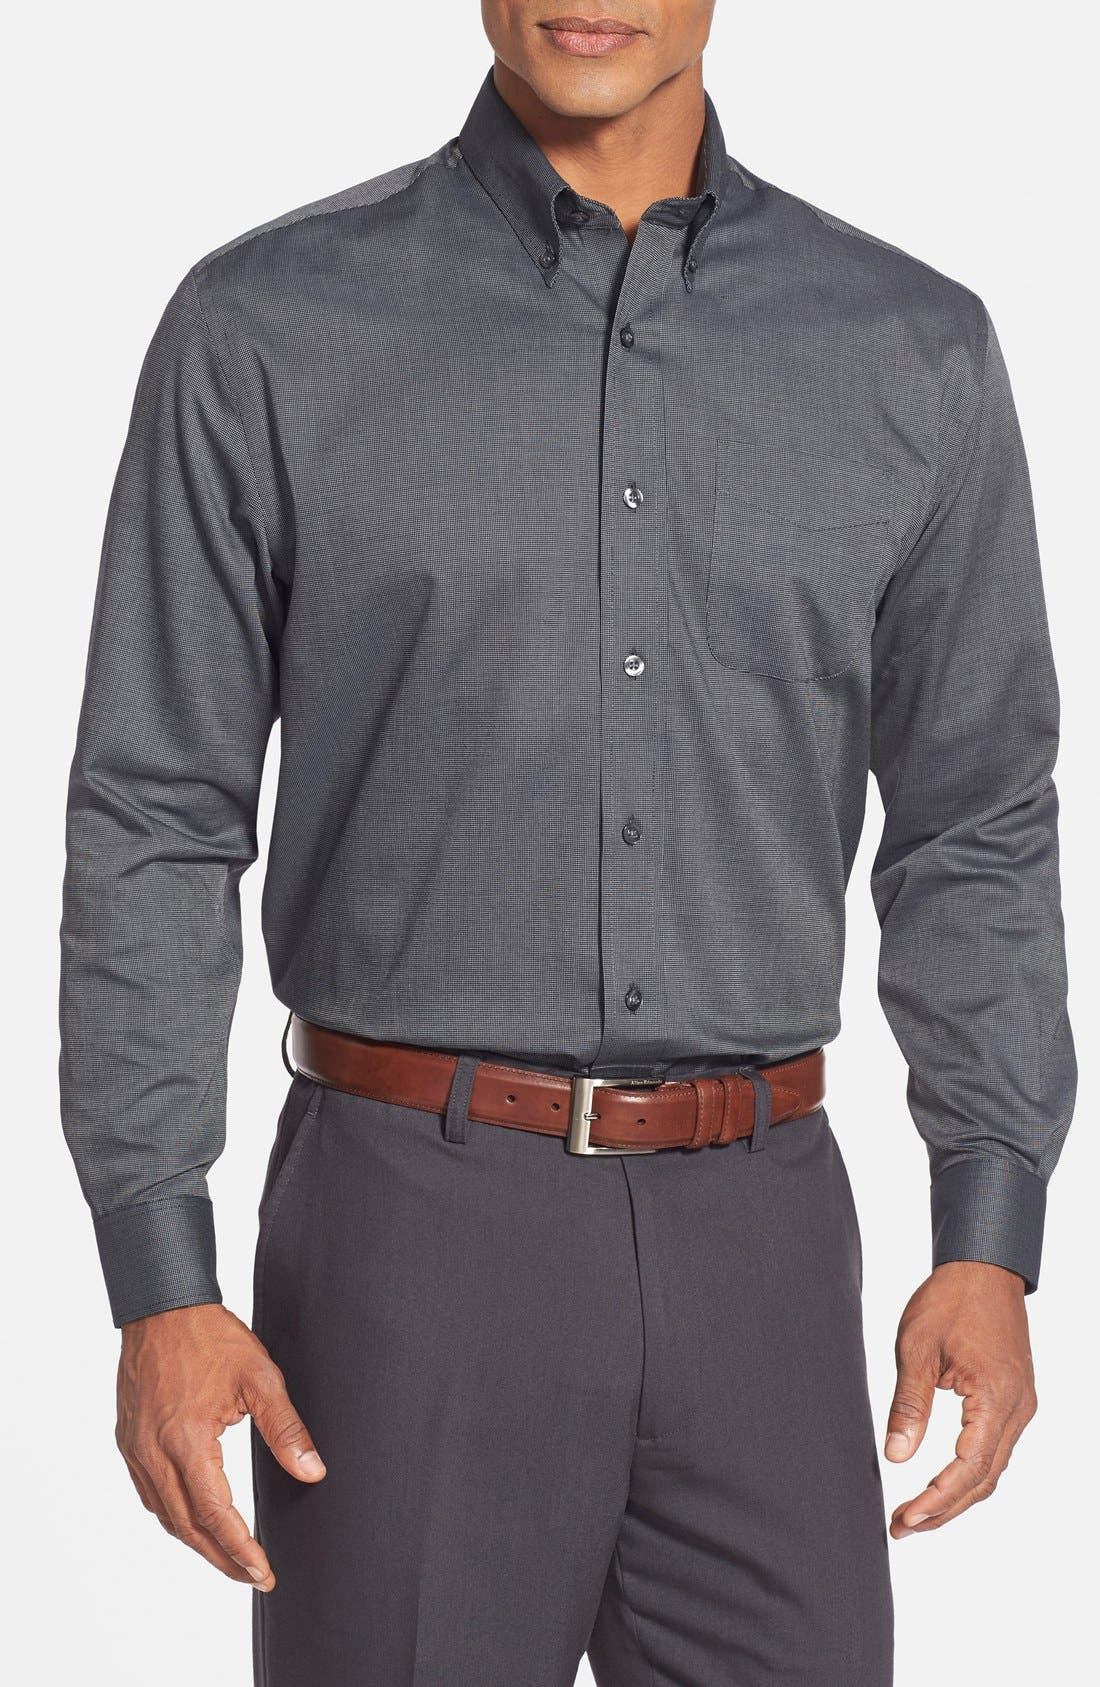 CUTTER & BUCK 'Nailshead' Classic Fit Sport Shirt